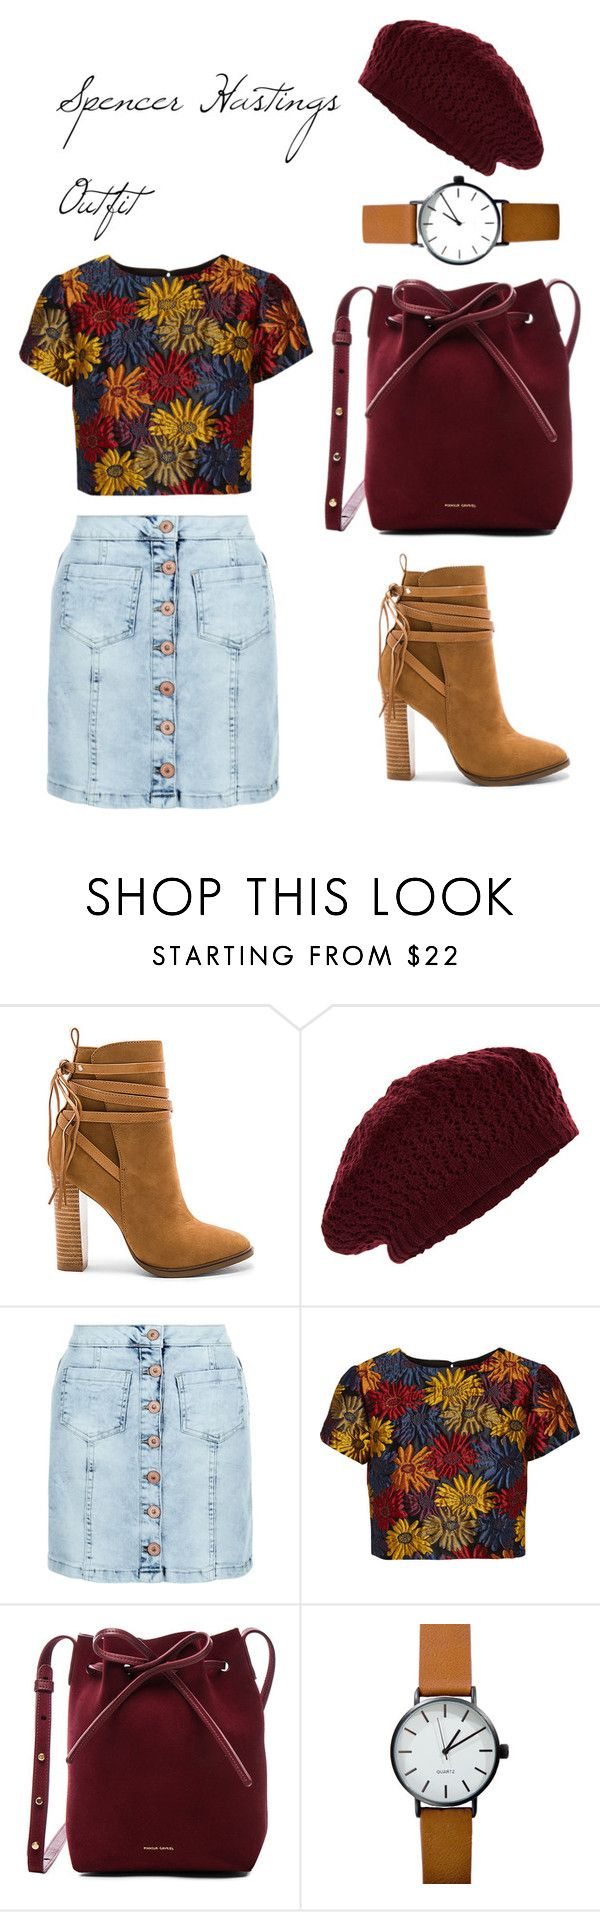 """""""Spencer Hastings Outfit"""" by andreellomp on Polyvore featuring moda, Steve Madden, Accessorize, New Look, Alice + Olivia e Mansur Gavriel"""